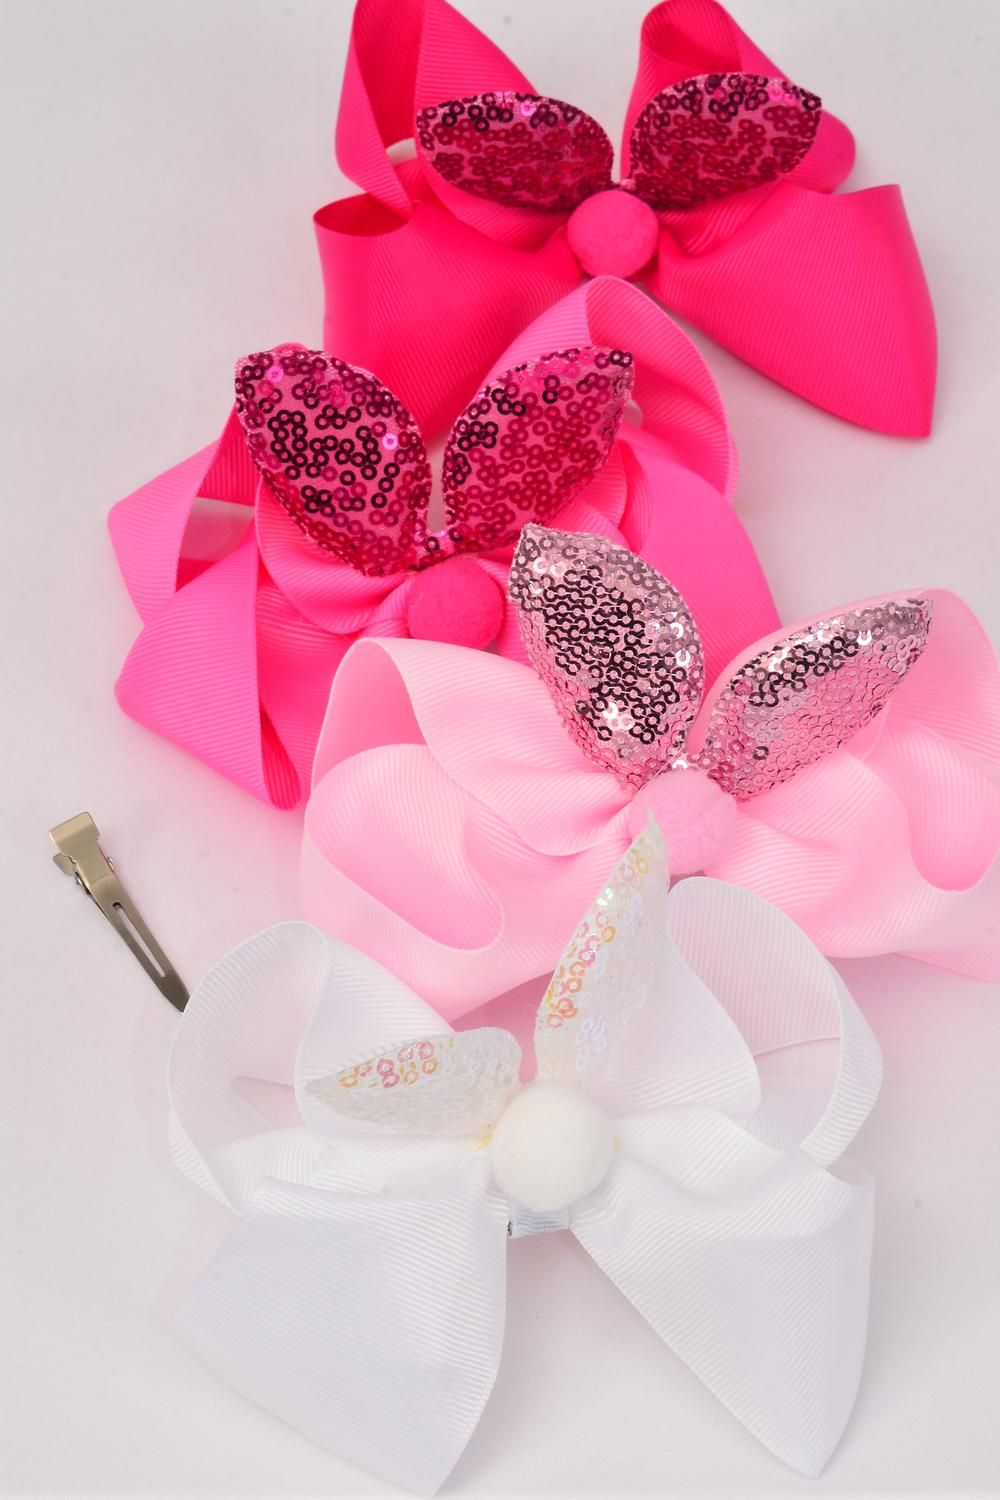 "Hair Bow Jumbo Bunny Ear Mermaid Sequin Fabric 2 Tone Reversible Dragon Shiny Scale Grosgrain Bowtie Pink Mix/DZ **Pink Mix** Alligator Clip,Size-6""x 6"" Wide,3 of Color Asst,Clip Strip & UPC Code"